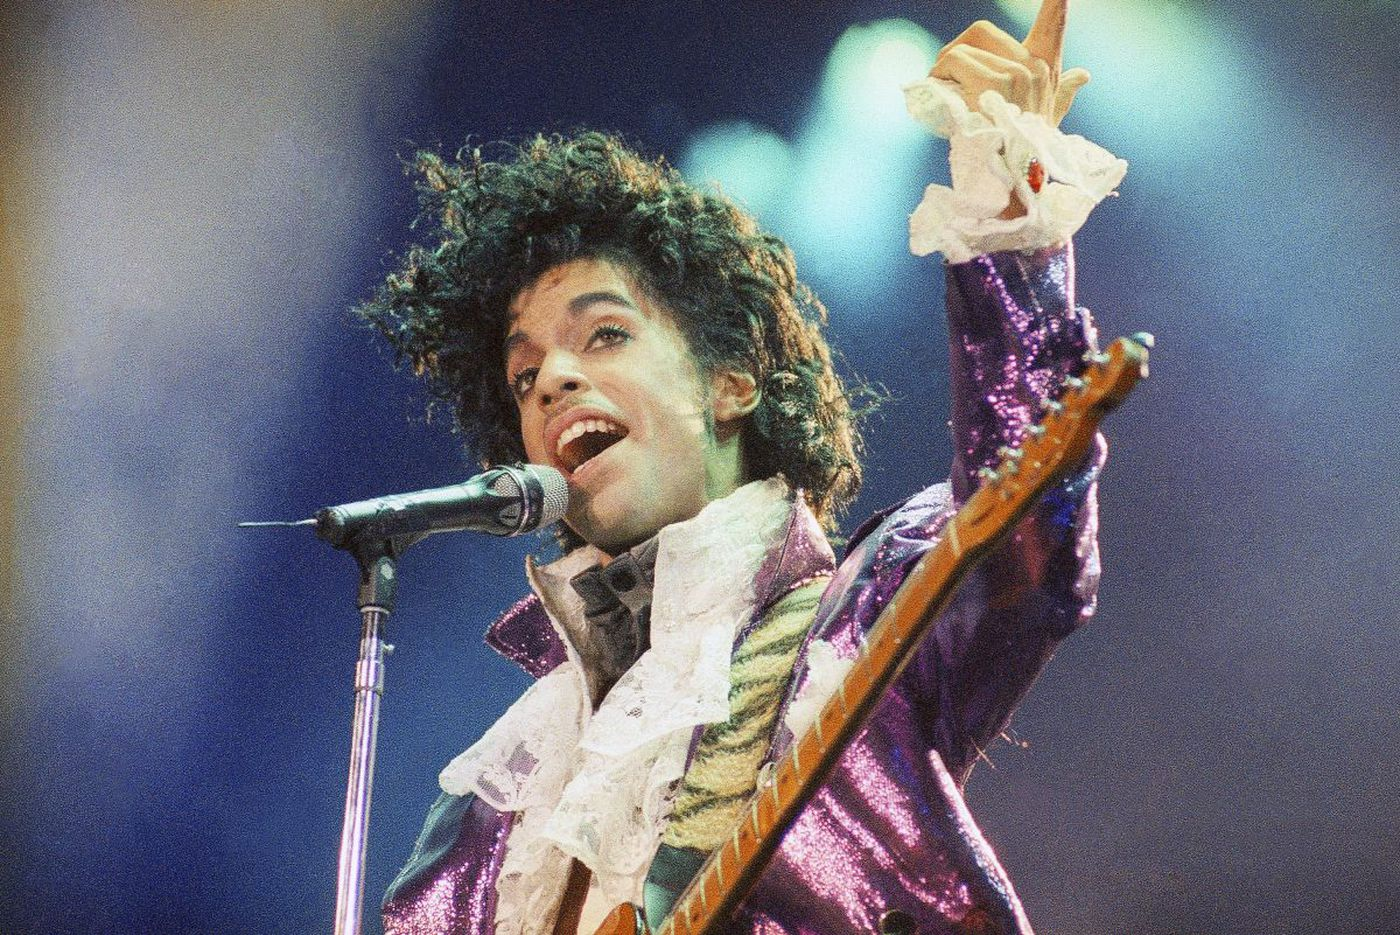 Free Prince tribute concert with Morris Day, Sheila E. coming to West Philly